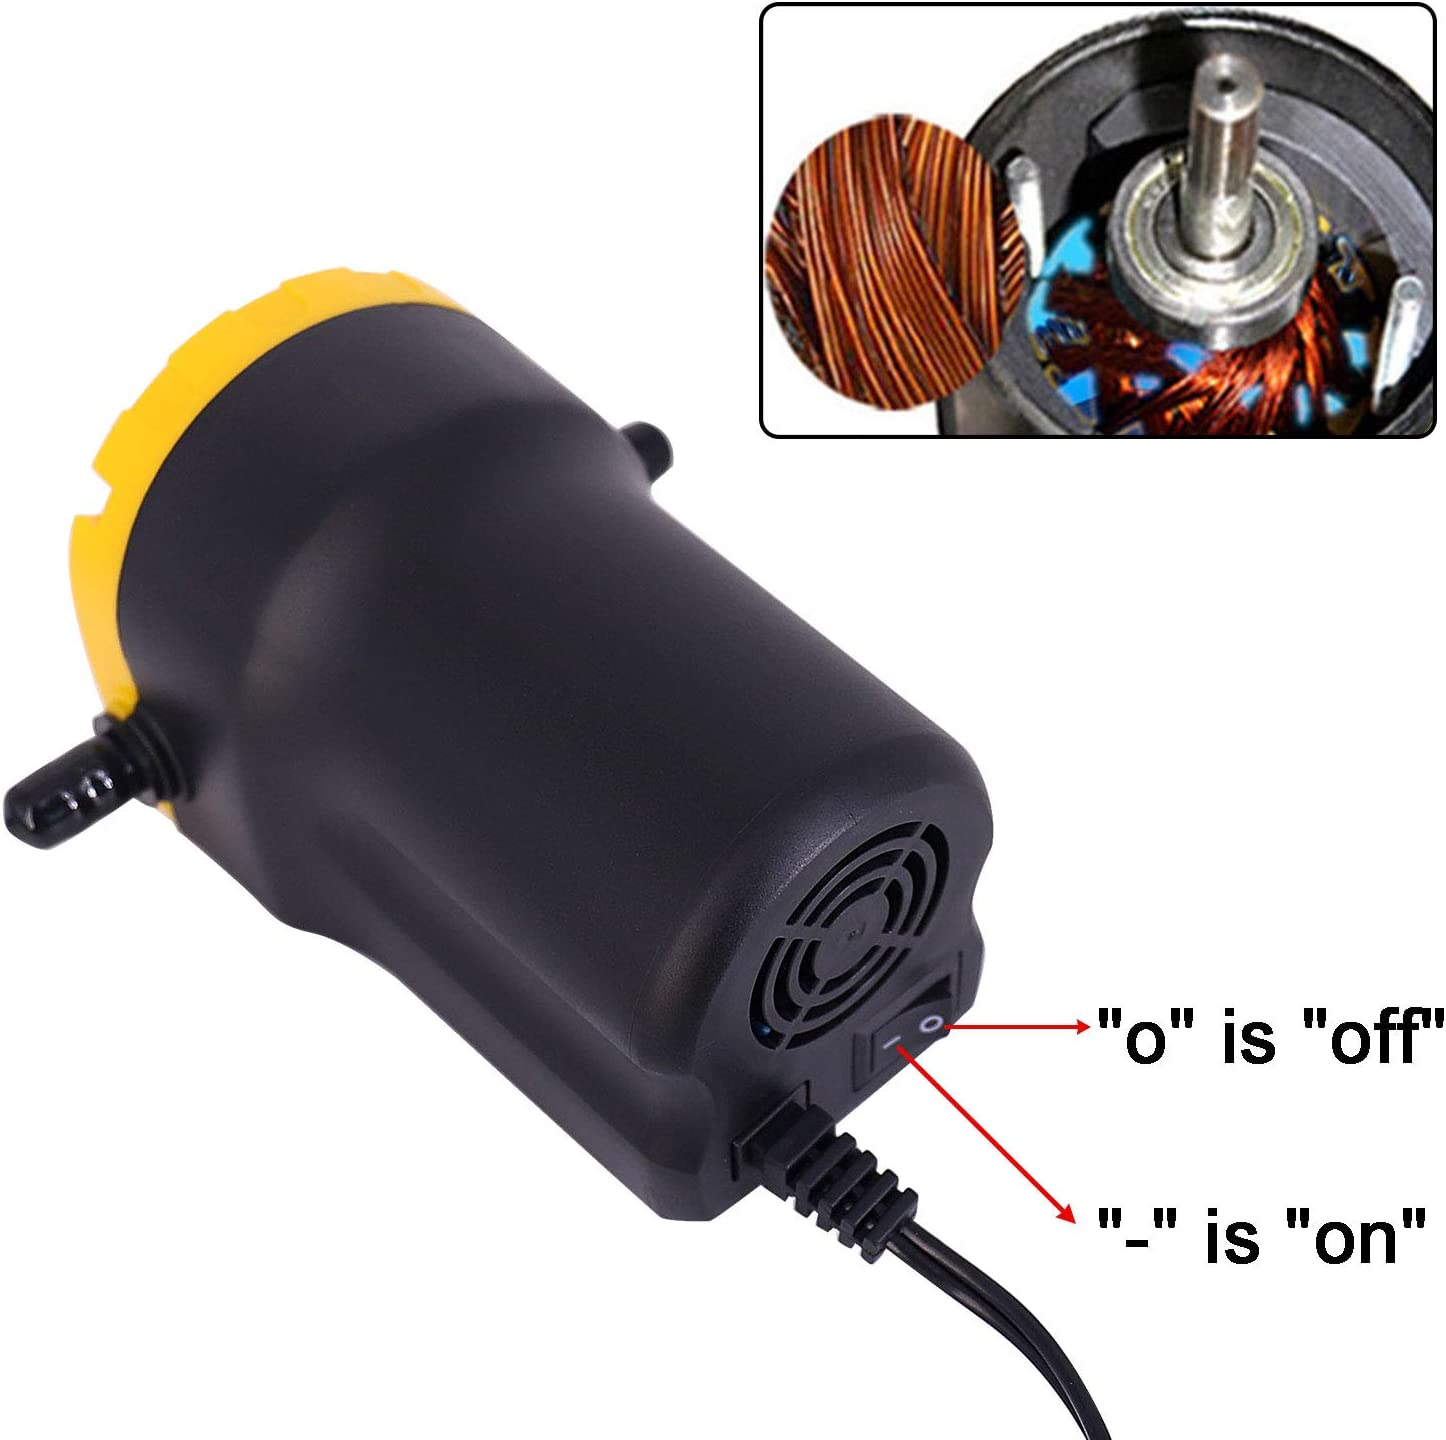 12V 60W Motor Oil Diesel Fluid Transfer Pump Qucik Oil Extractor Pump Scavenge Suction for Car Boat Motorbike Truck RV ATV(Upgrade) WAMTHUS Oil Change Pump Extractor